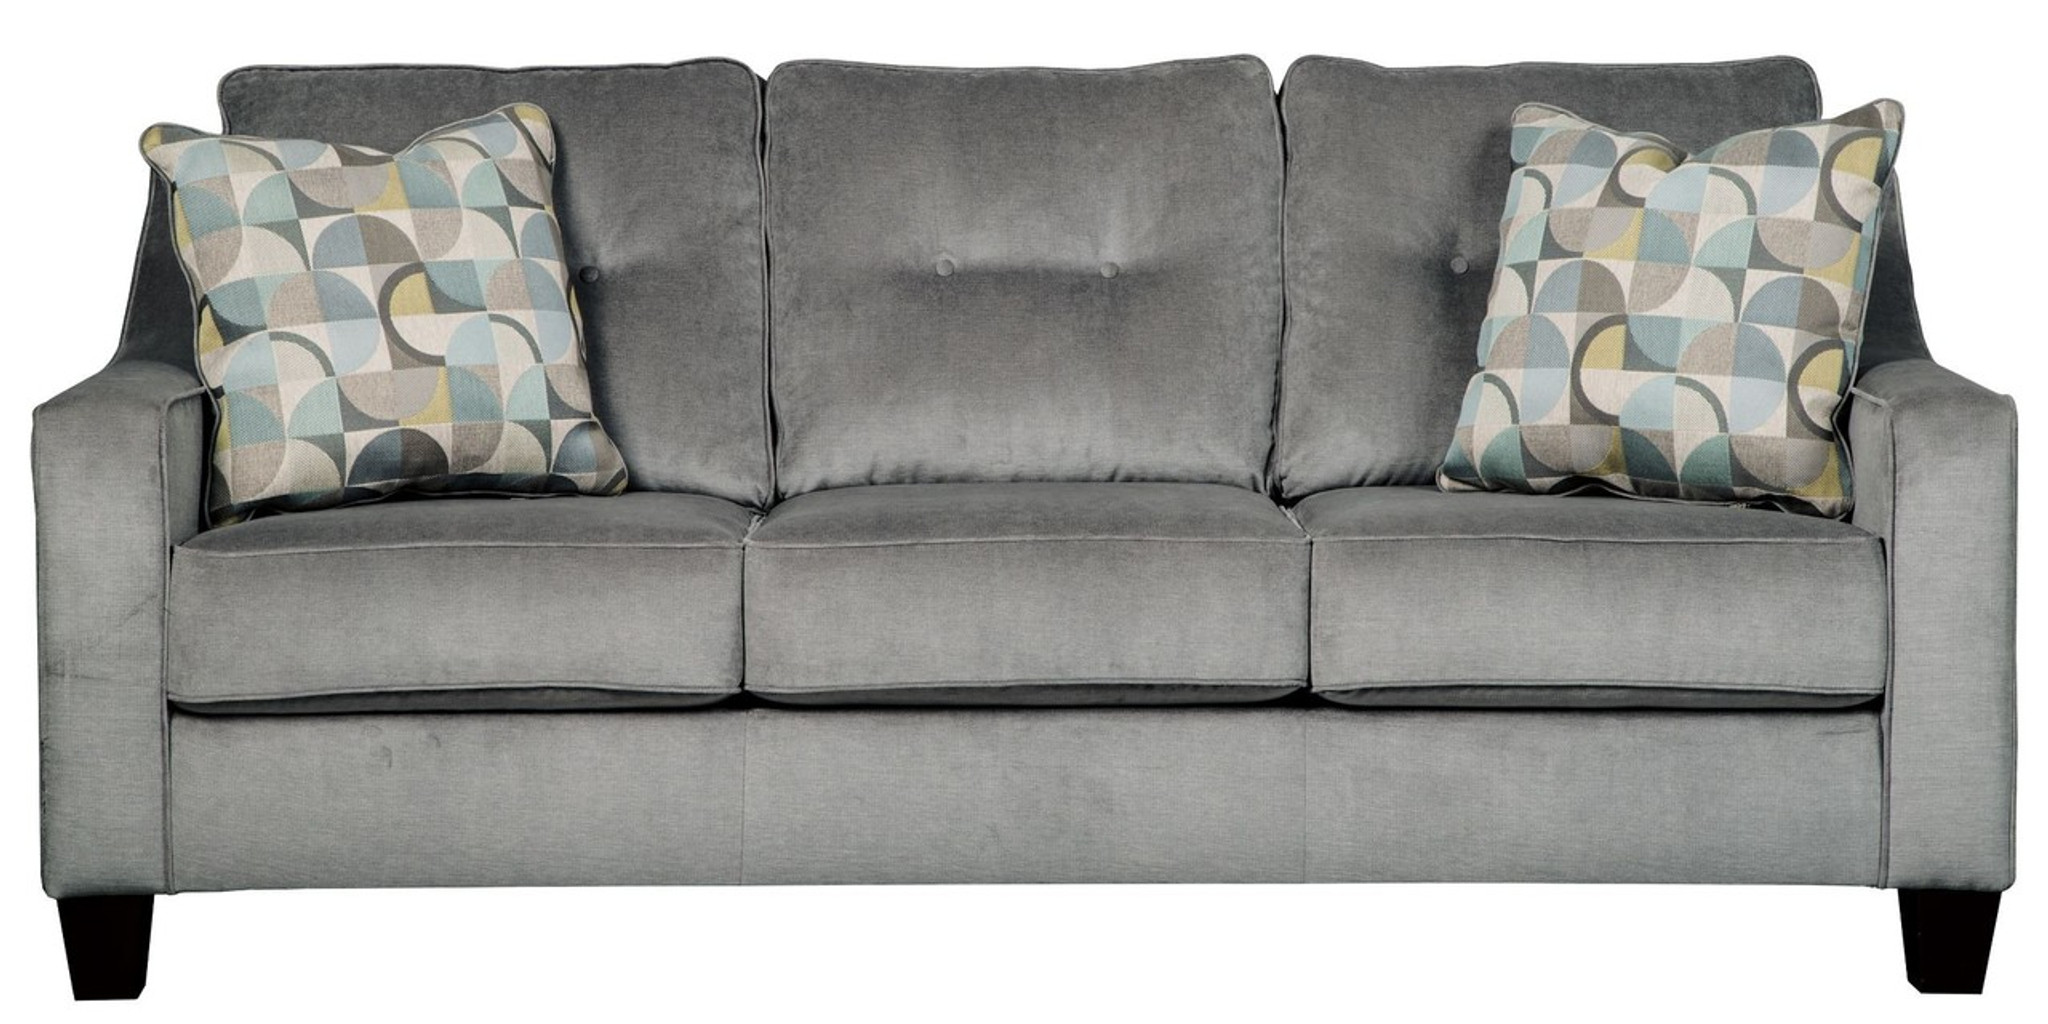 Stupendous Bizzy Smoke Collection Queen Sofa Sleeper Onthecornerstone Fun Painted Chair Ideas Images Onthecornerstoneorg